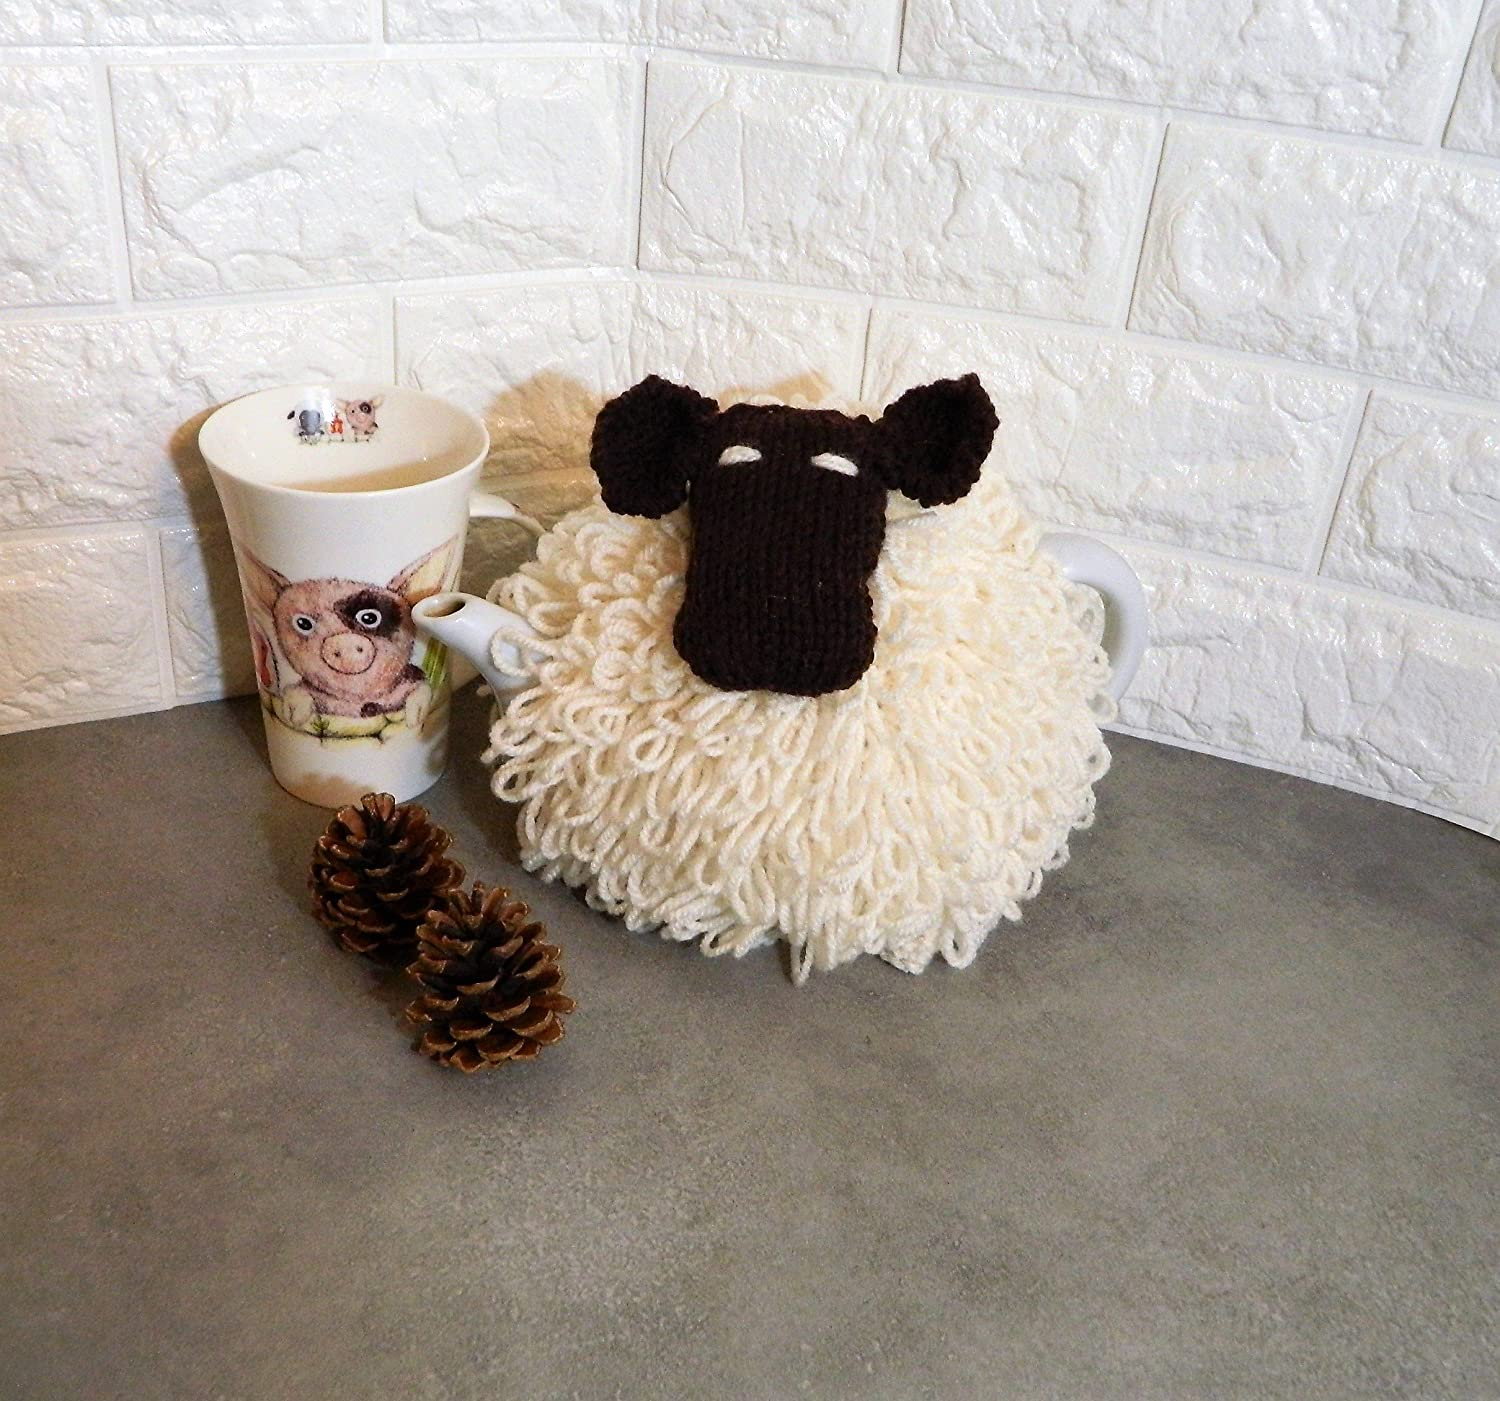 Hand Knitted Sheep Tea Cozy in loop stitch, fits 2 - 4 cup tea pot